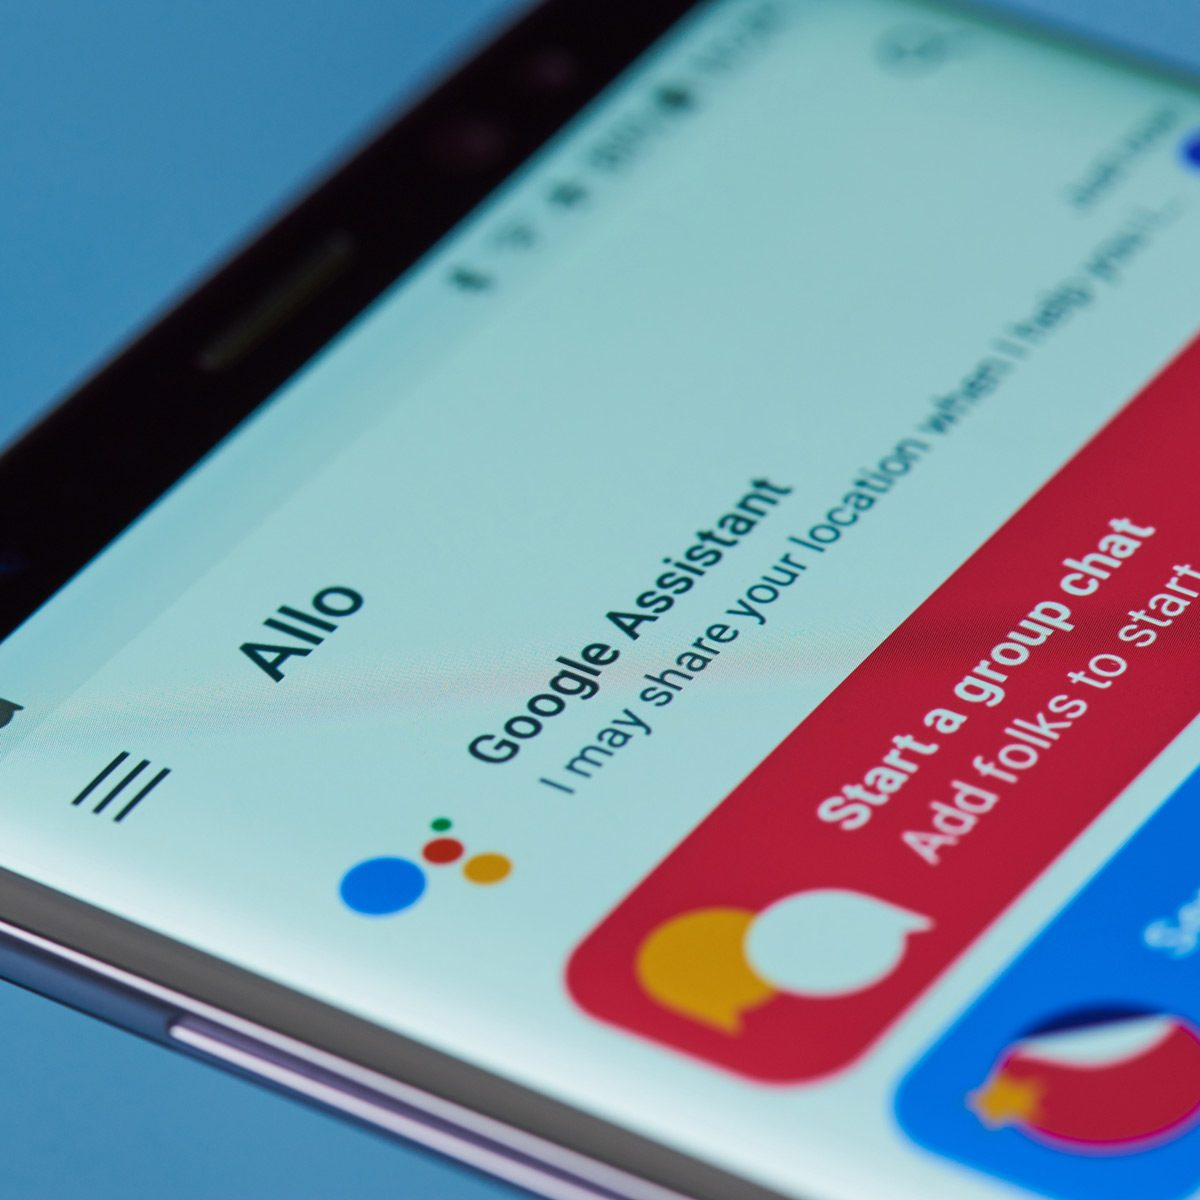 Google-Assistant-app-open-on-phone